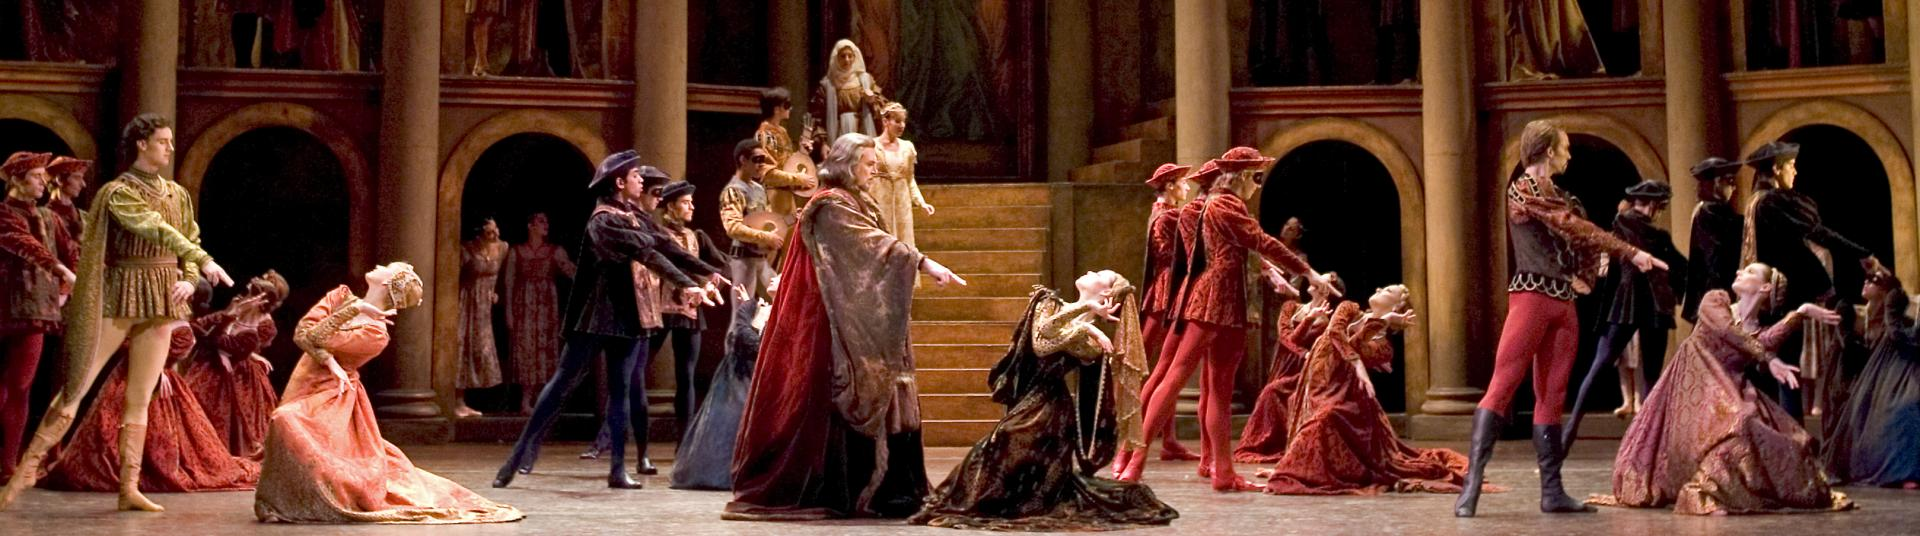 romeo and ruliet A raw, dangerous production of shakespeare's tragic love story, brought alive for  a modern audience.